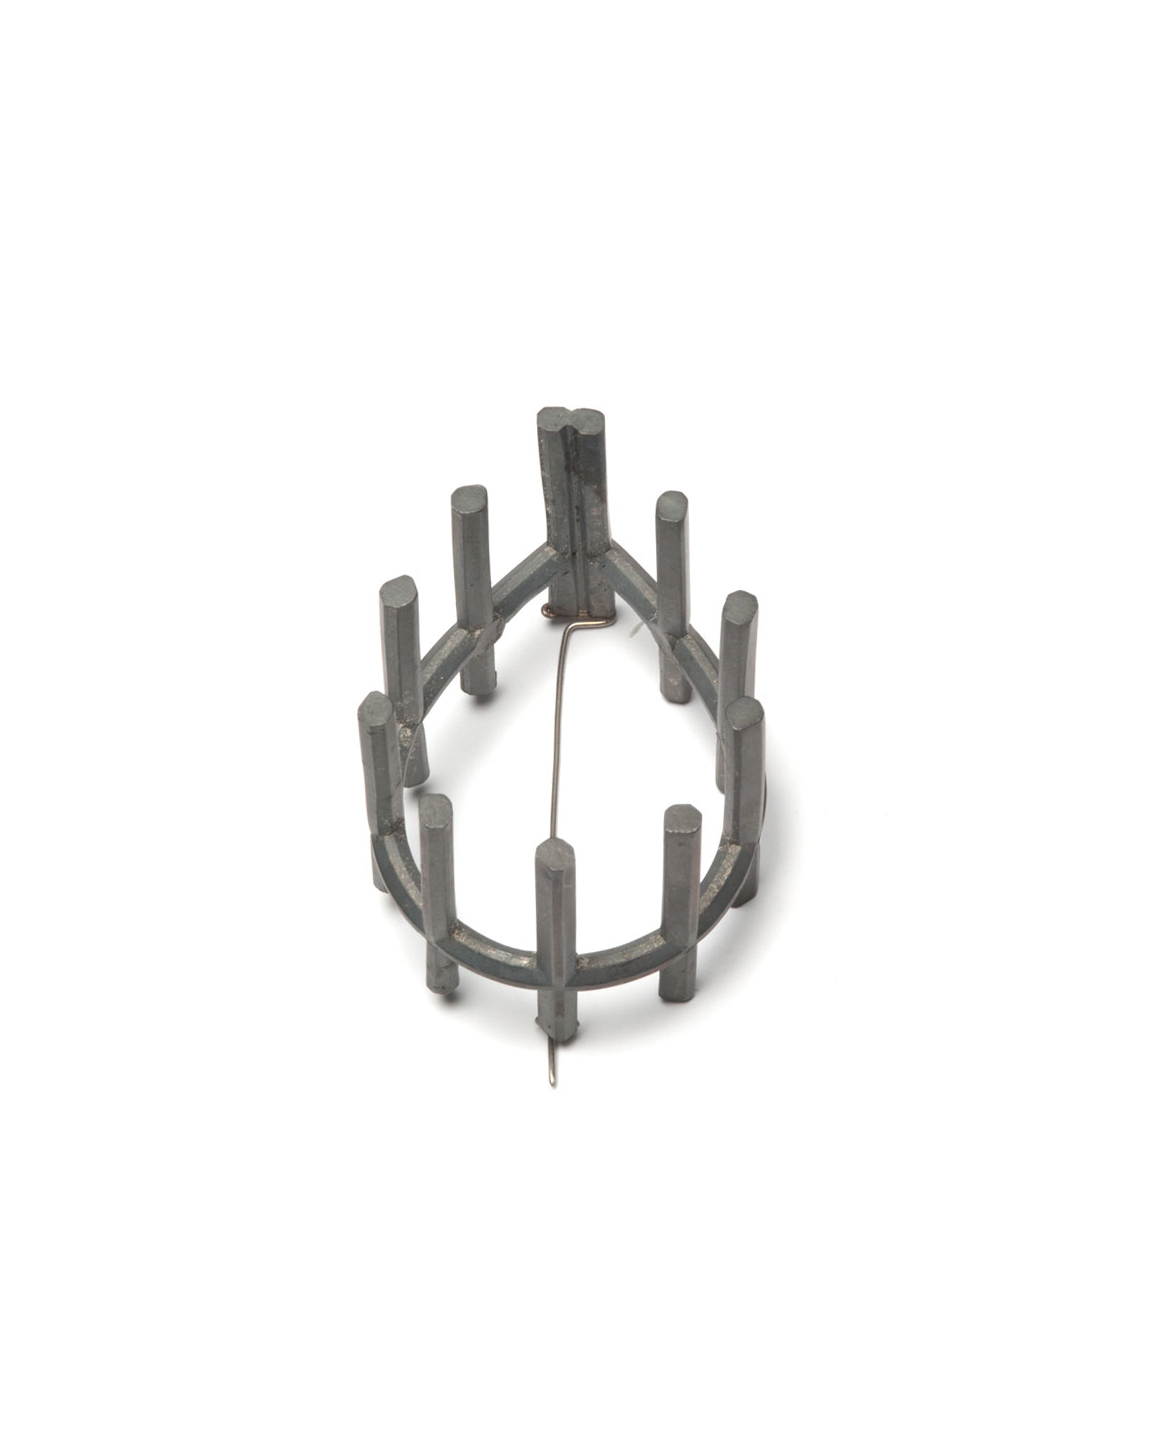 Winfried Krüger, untitled, 2008, brooch; oxidised silver, 45 x 40 mm, €1575